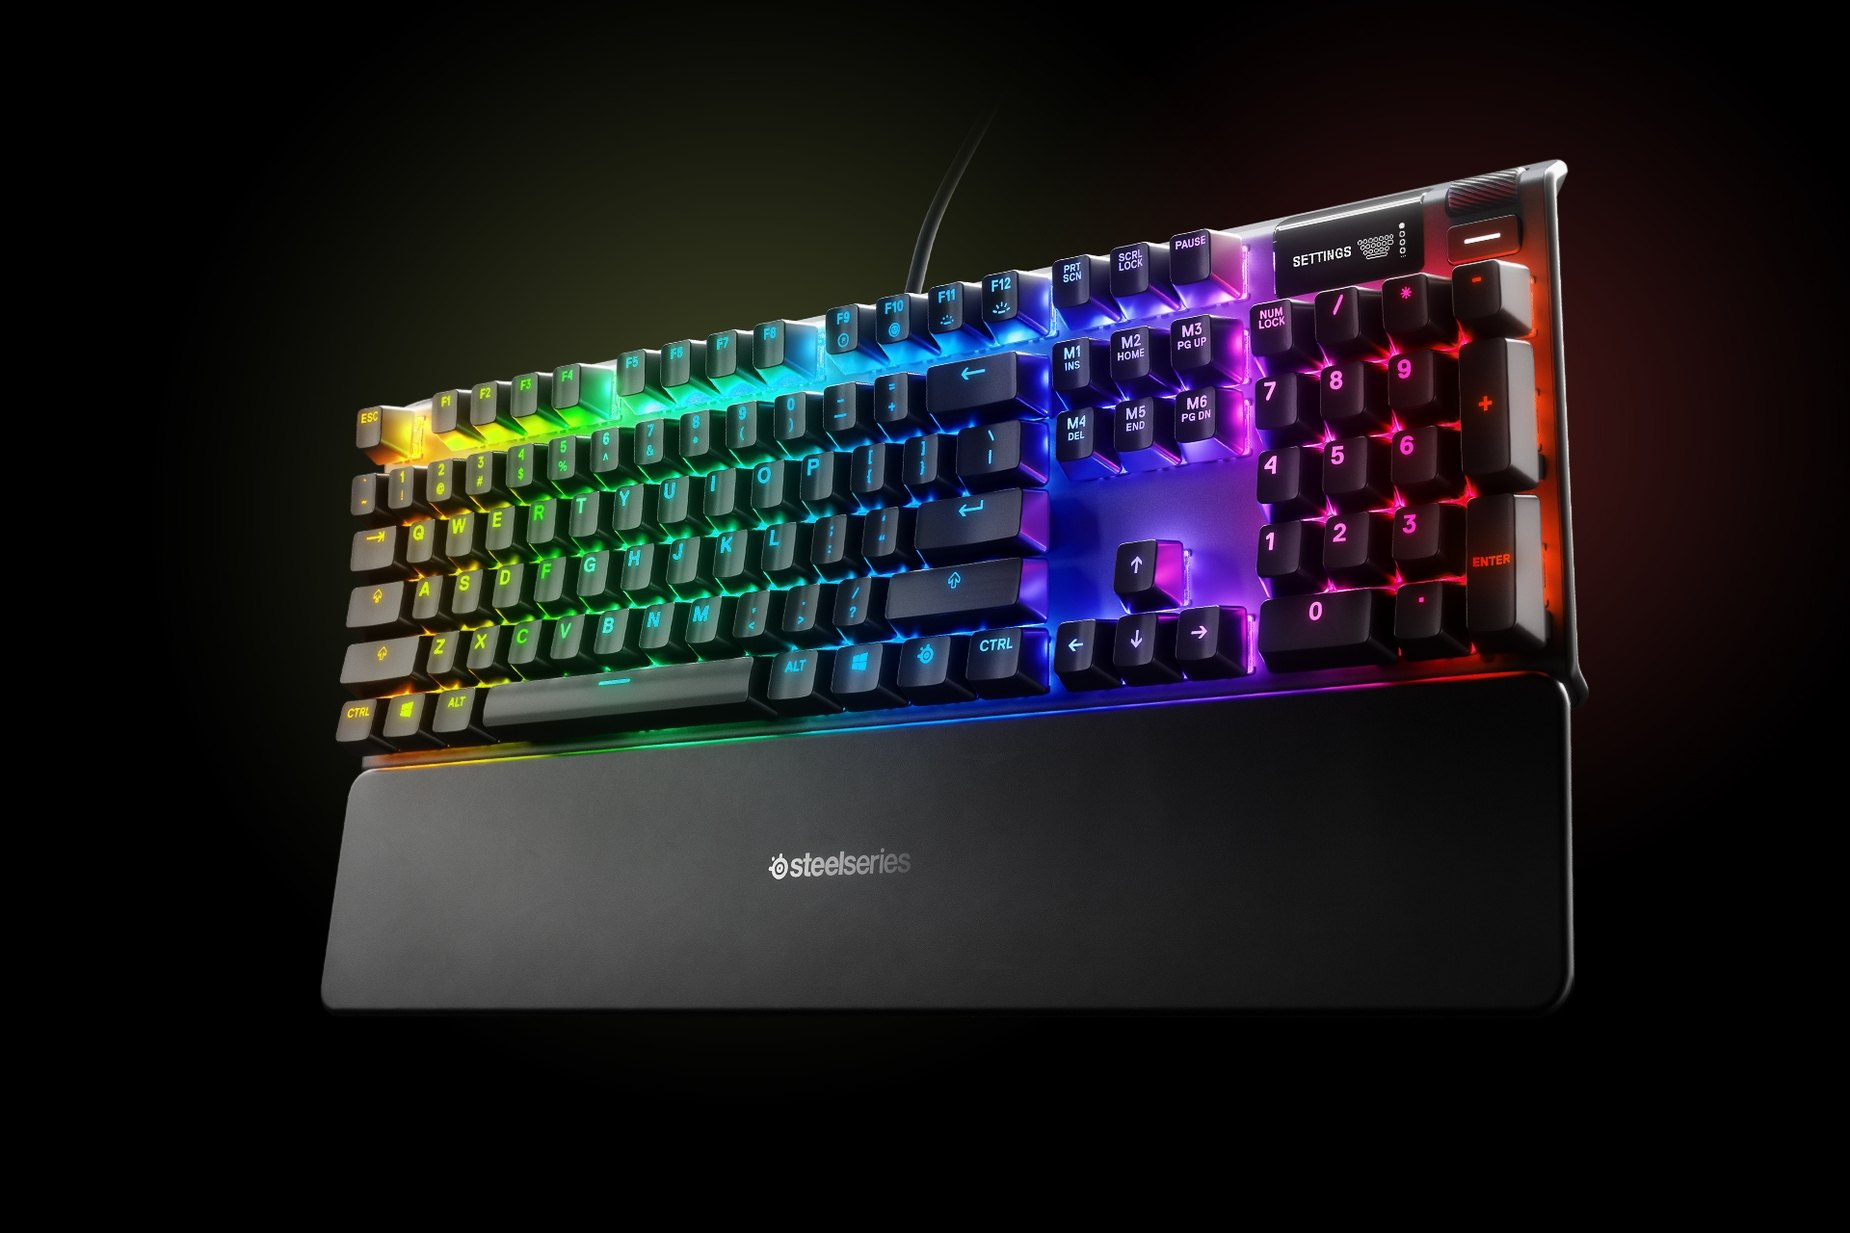 德语-Apex 7 (Brown Switch) gaming keyboard with the illumination lit up on dark background, also shows the OLED screen and controls used to change settings and adjust audio